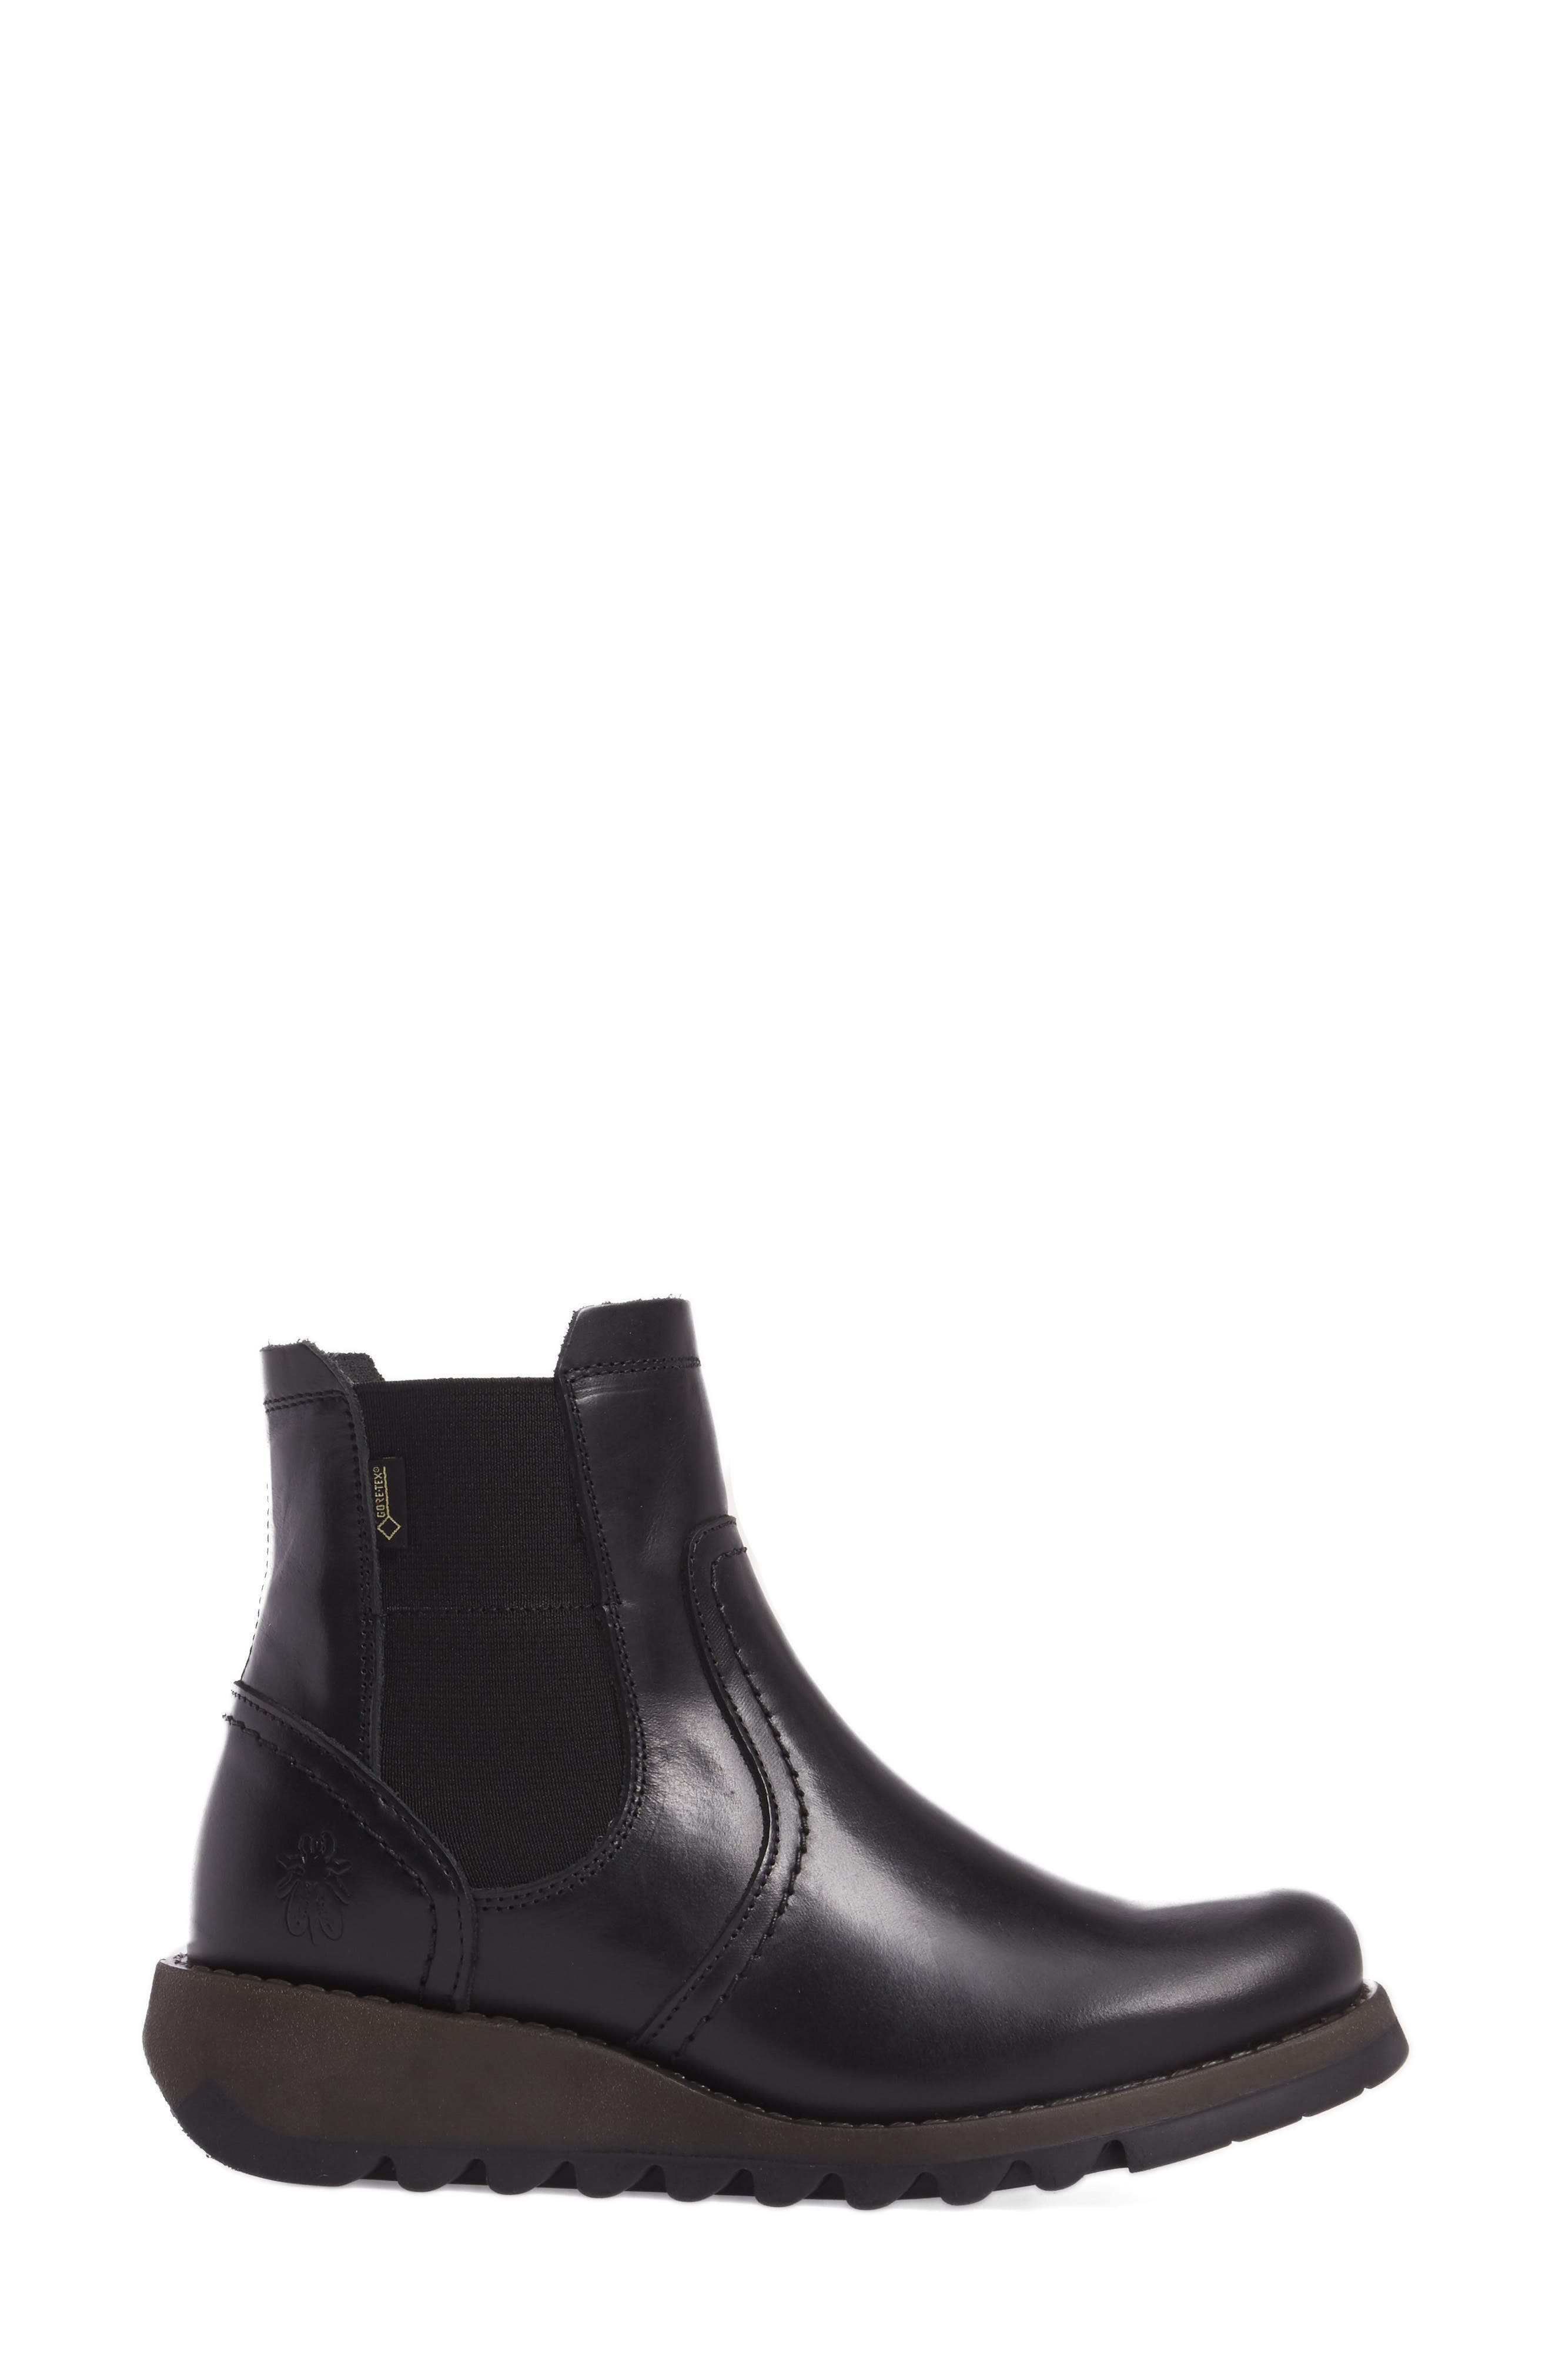 Scon Waterproof Gore-Tex<sup>®</sup> Chelsea Boot,                             Alternate thumbnail 3, color,                             BLACK LEATHER